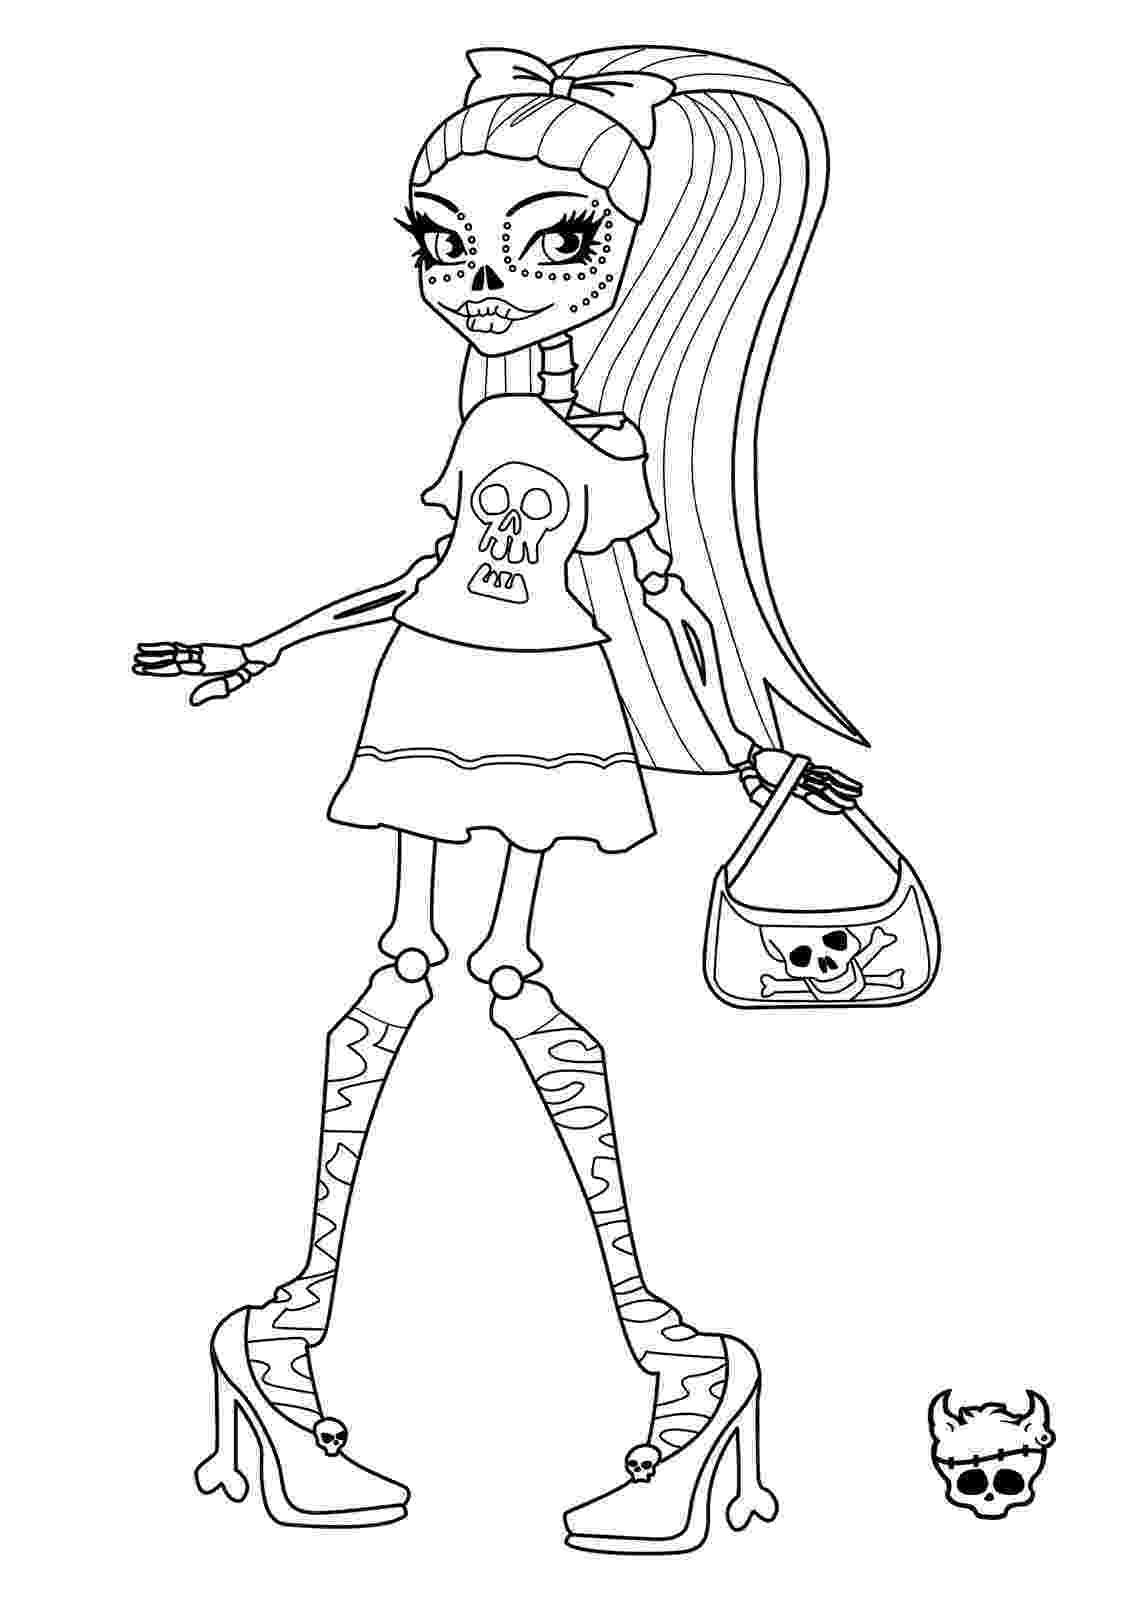 monster high pages to color monster high coloring pages team colors pages color to high monster